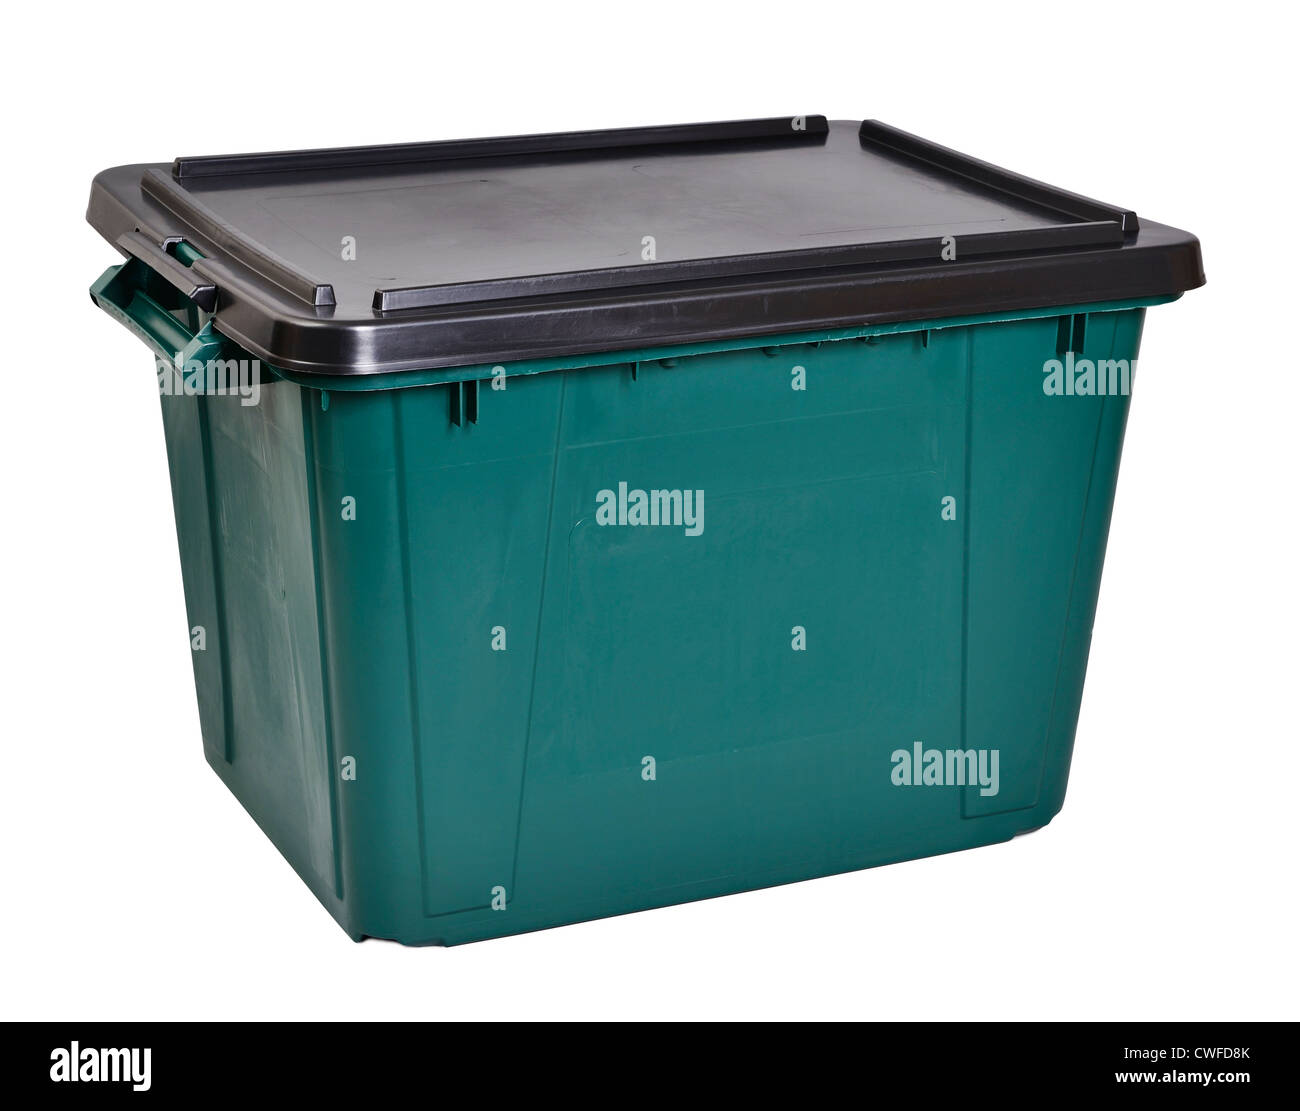 Green plastic storage box with a black lid - Stock Image